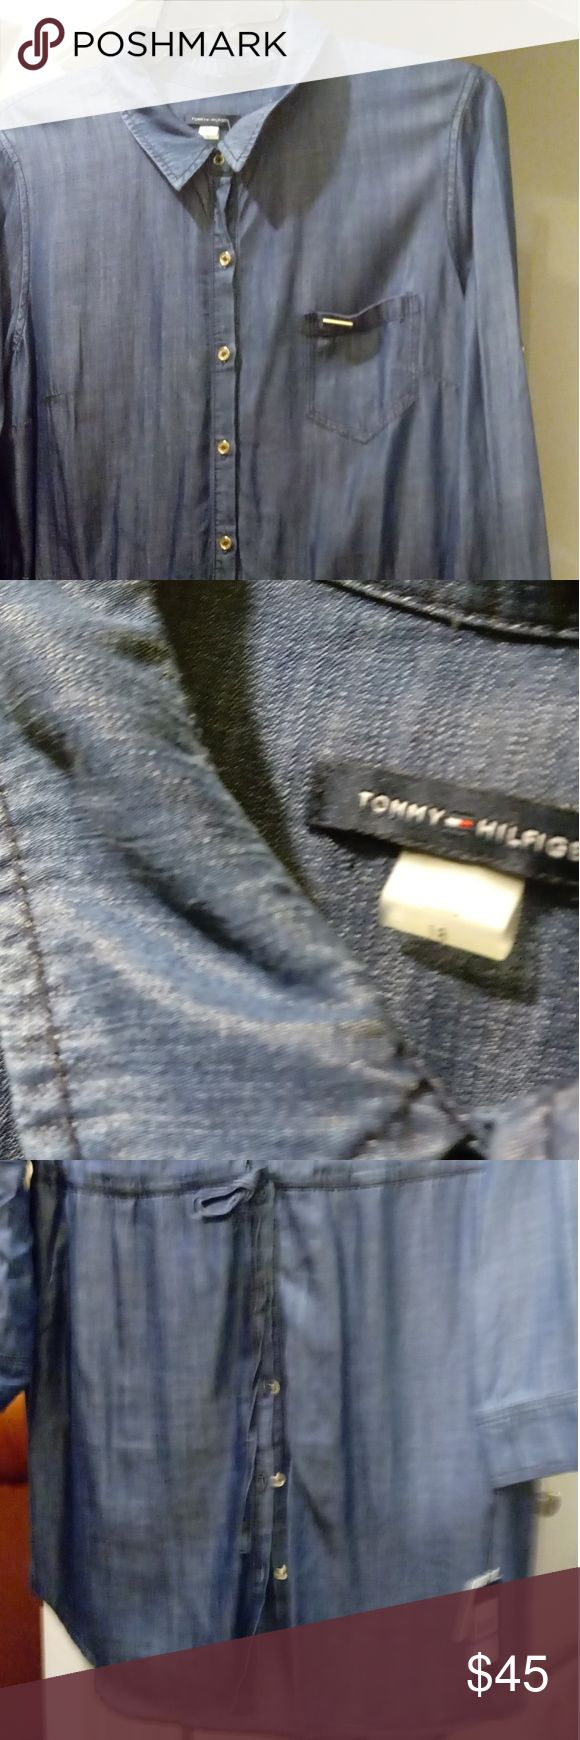 Tommy Hilfiger soft denim shirt dress Want a classy alternative for jeans day?  Front button up, tie waist, three front pockets and long sleeves that can be converted to mid length for a more casual look.  Machine wash cold and tumble dry medium.  NWT original tags and extra button attached. Tommy Hilfiger Dresses Long Sleeve